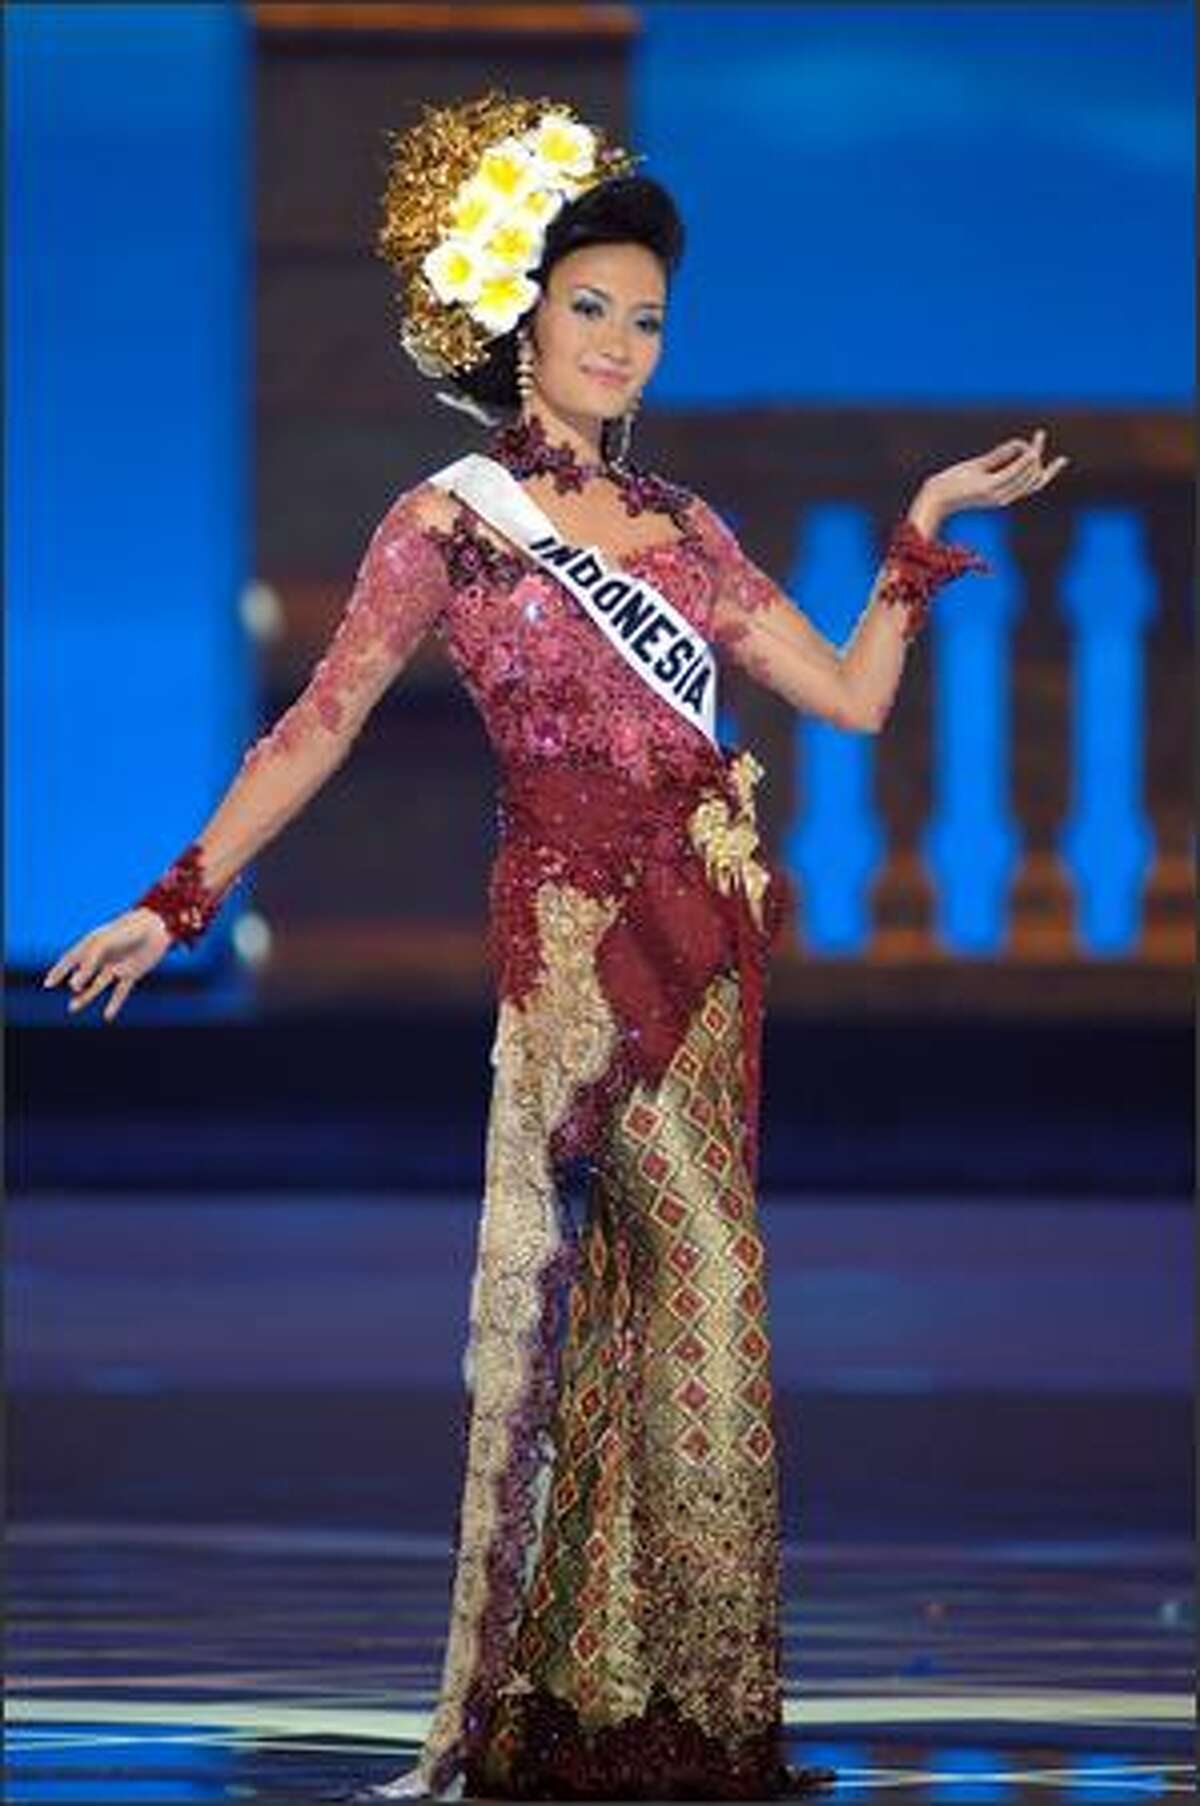 Artika Sari Devi, Miss Indonesia.